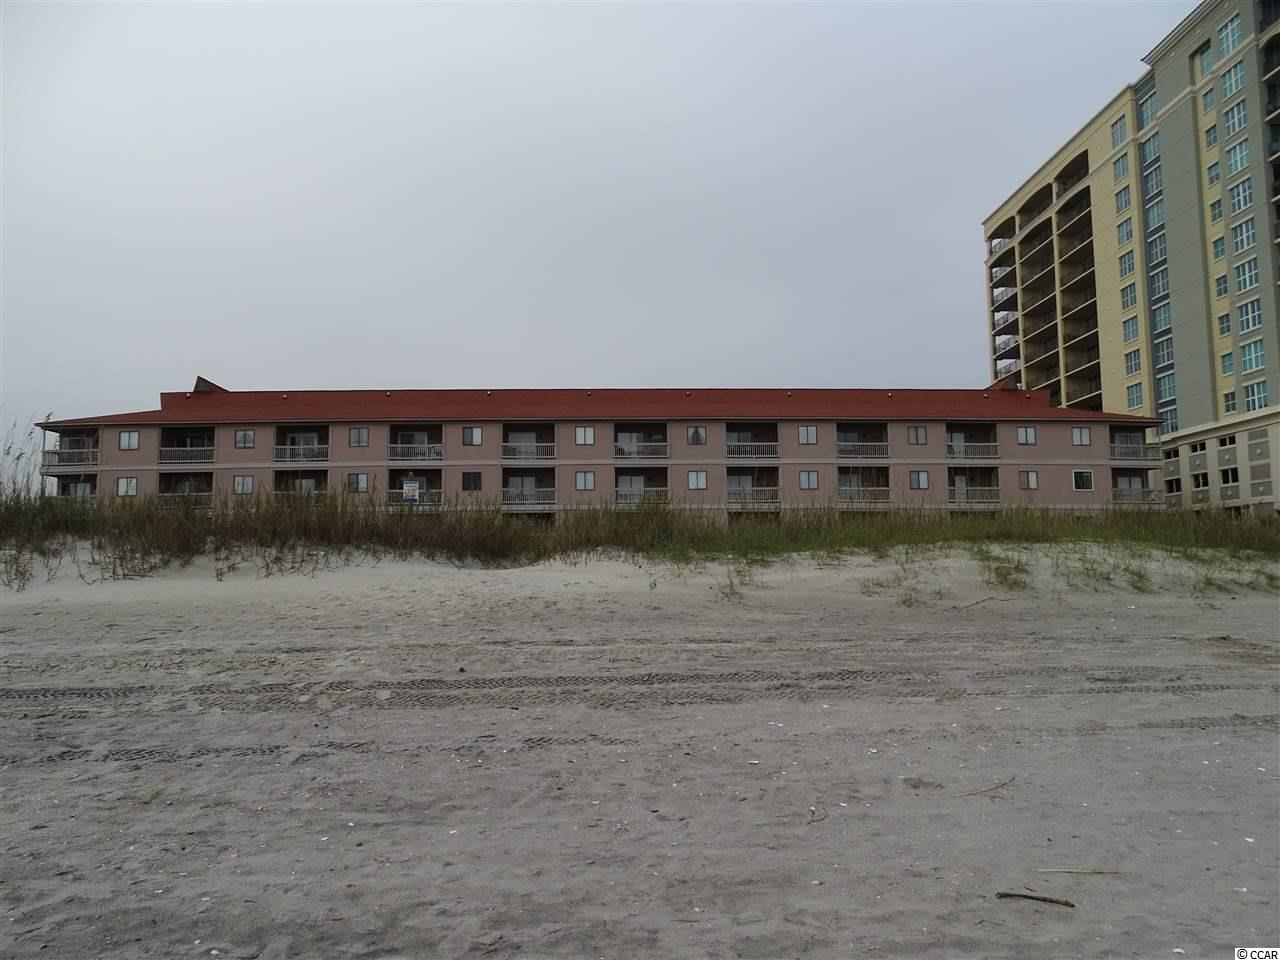 Rare find! 2BR 2BA ocean oriented unit in oceanfront building on popular OD section of North Myrtle Beach. This end unit is well maintained and is offered for sale fully furnished, excluding personal items and contents of owners closet. Recently improved with new kitchen cabinetry, appliances and many new furnishings including dining area, television storage stand in living room as well as all new mattresses. New plumbing fixtures in both bathroom tubs. Upgraded with tile flooring in all public areas, newer HVAC, washer and dryer as well as water heater. Spacious interior owners closet also includes area for washer and dryer. Outdoor pool and inviting deck area with direct walkway to the beach. Solid HOA with lower fees which includes building insurance. Ideal investment property or vacation getaway. Convenient to all the attractions of North Myrtle Beach as well as access to the Robert Edge Parkway. Don't miss this opportunity.